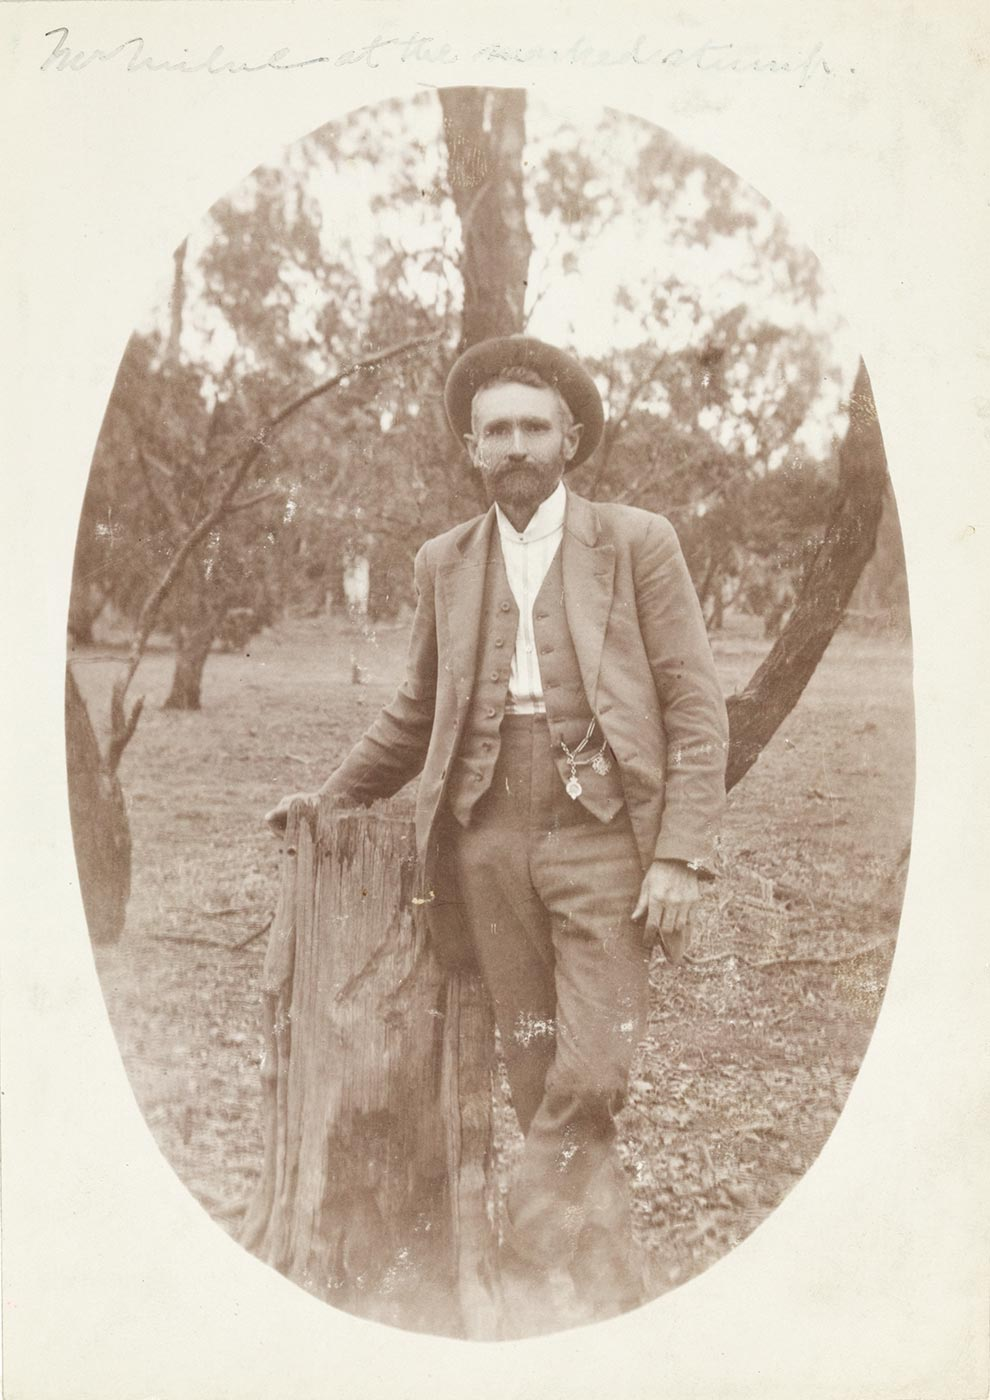 Black and white photo of a man leaning against a stump in bush land setting. - click to view larger image